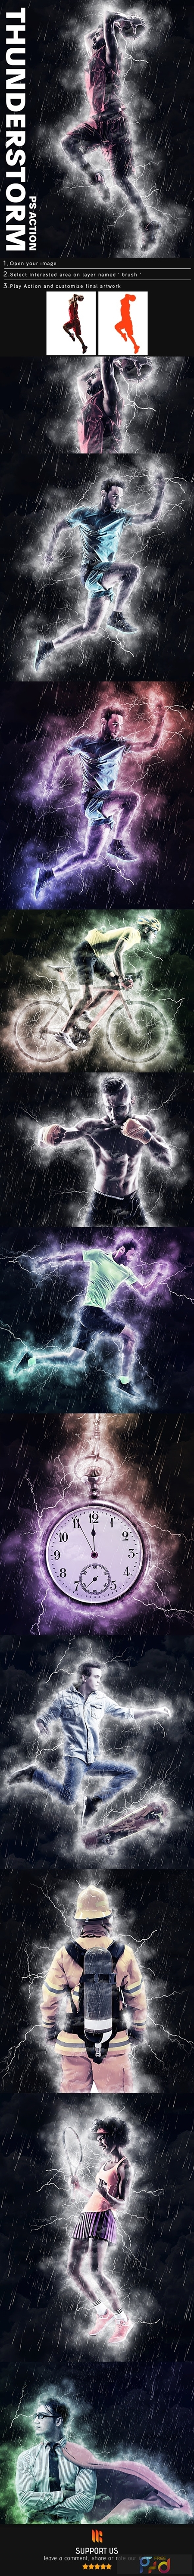 Thunderstorm Photoshop Action 25009367 1